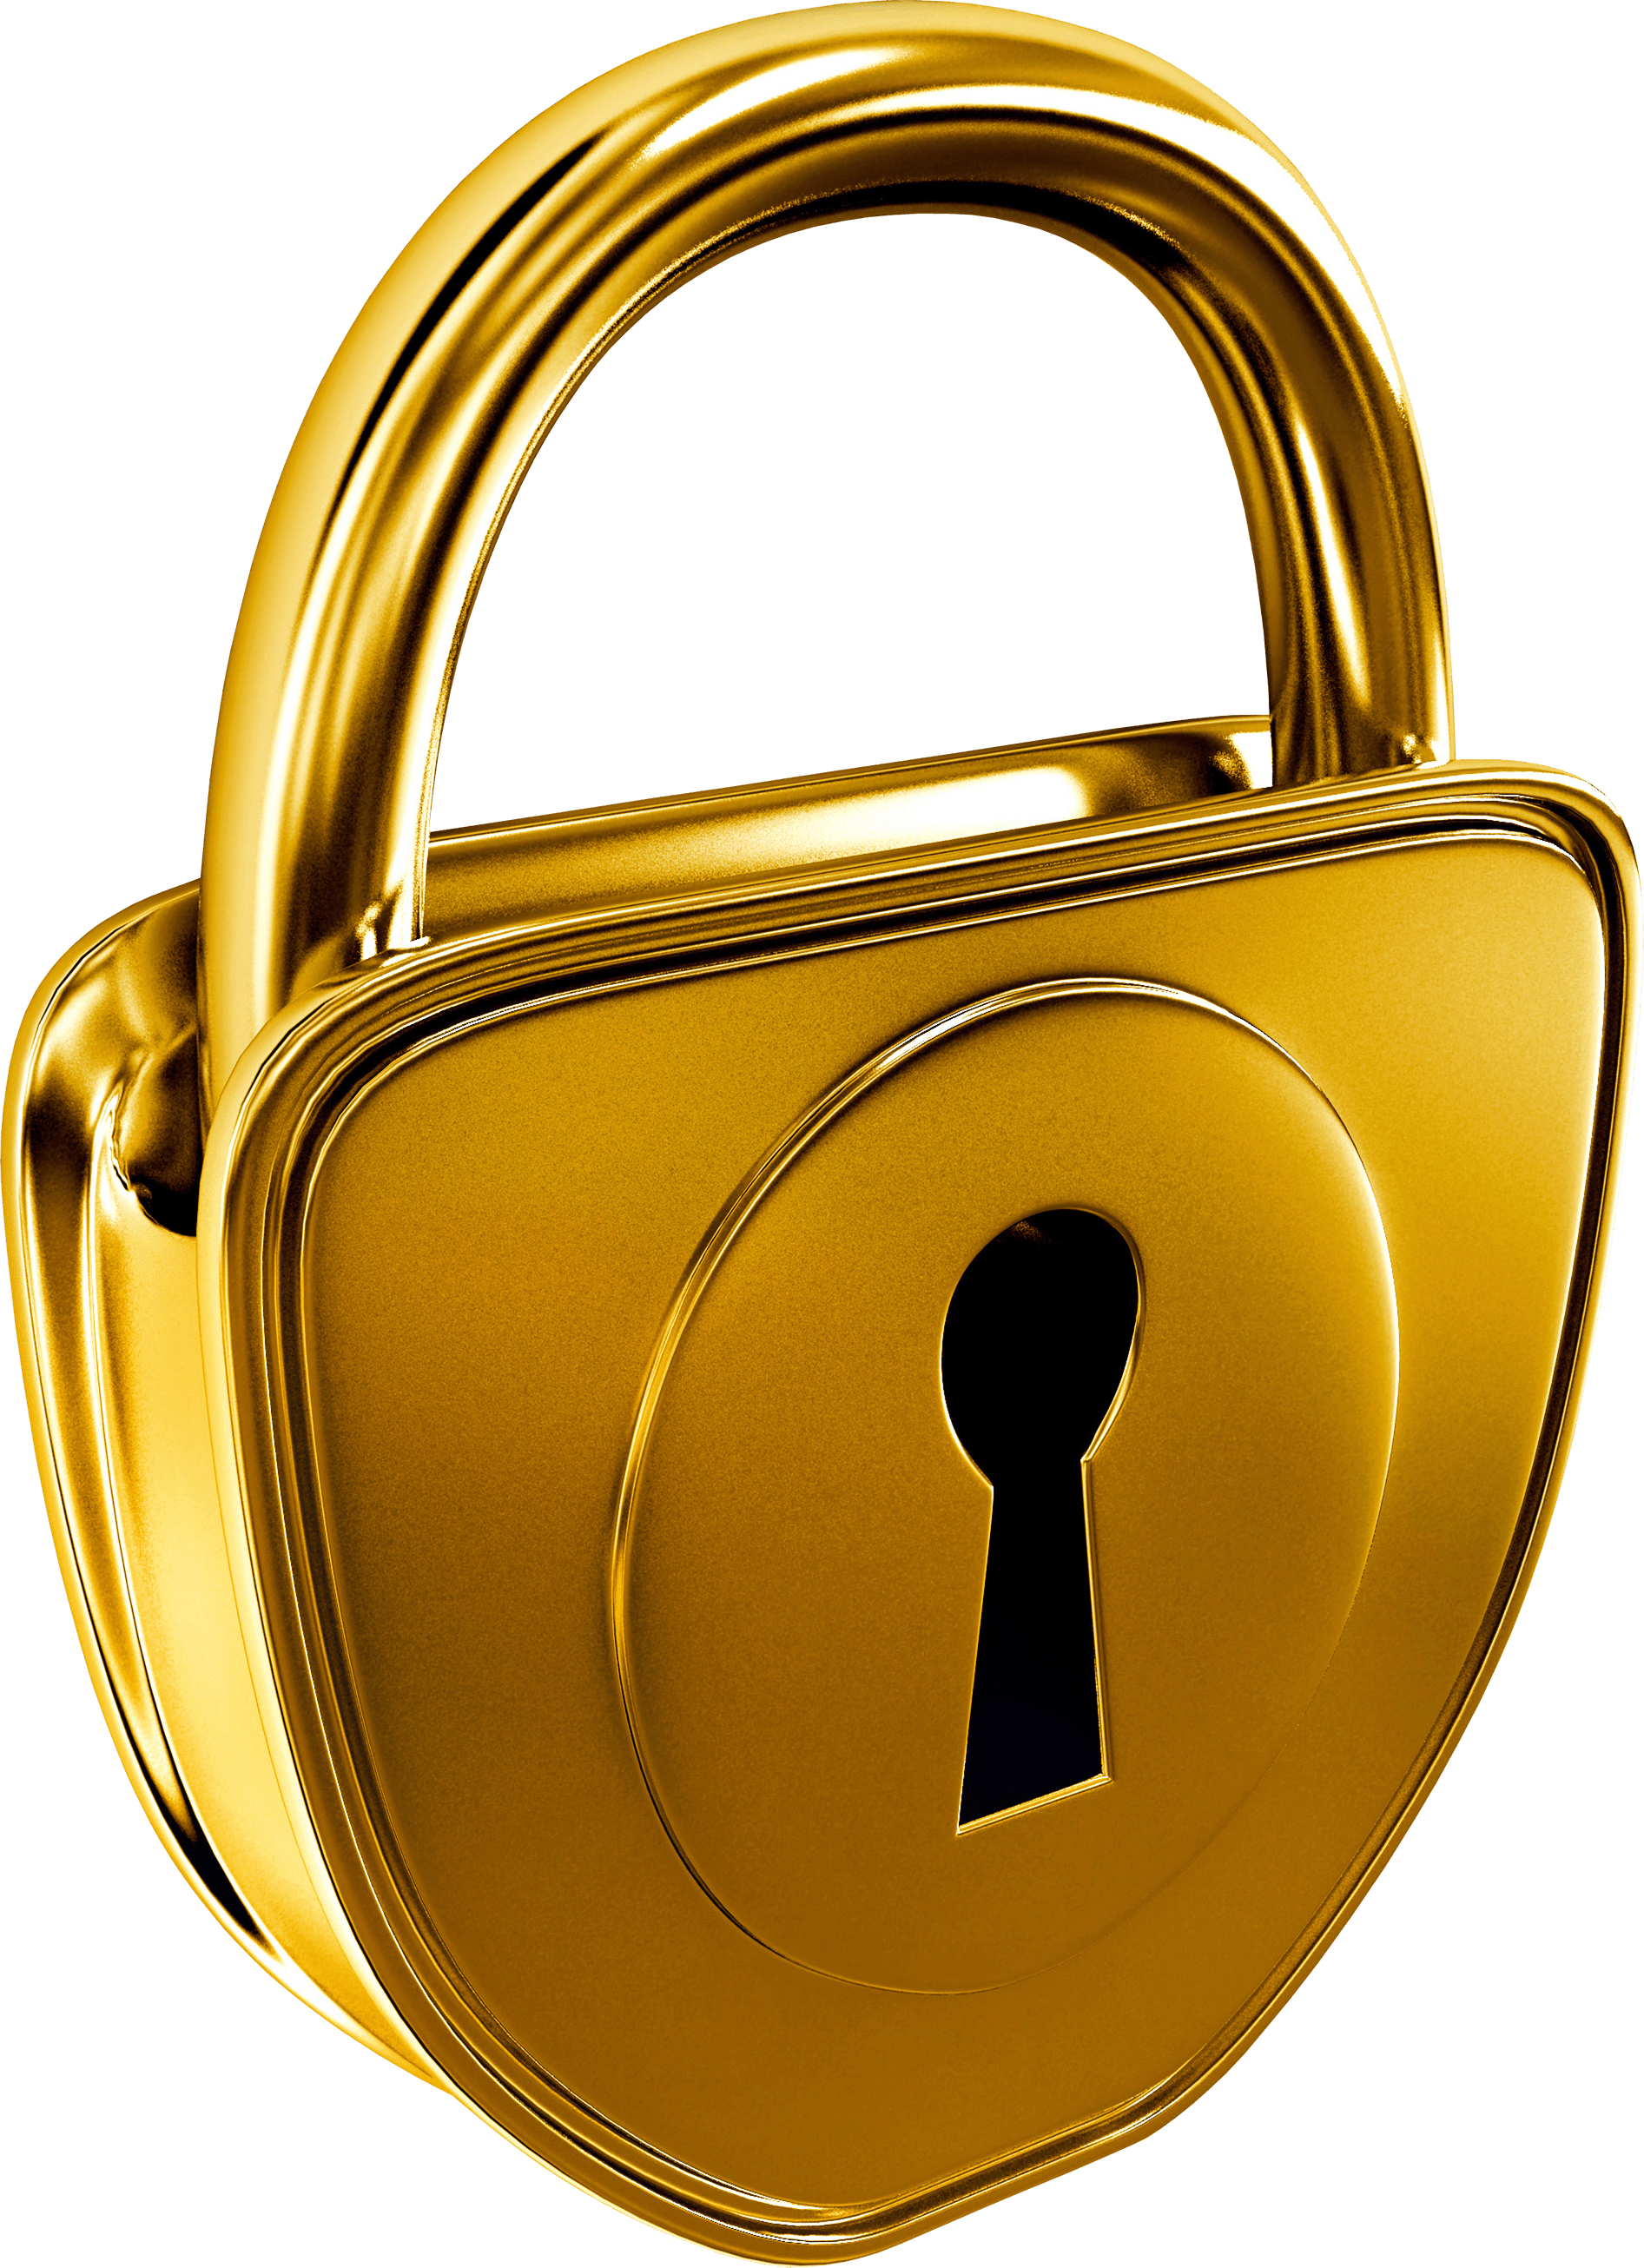 gold keyhole clipart - HD860×1226